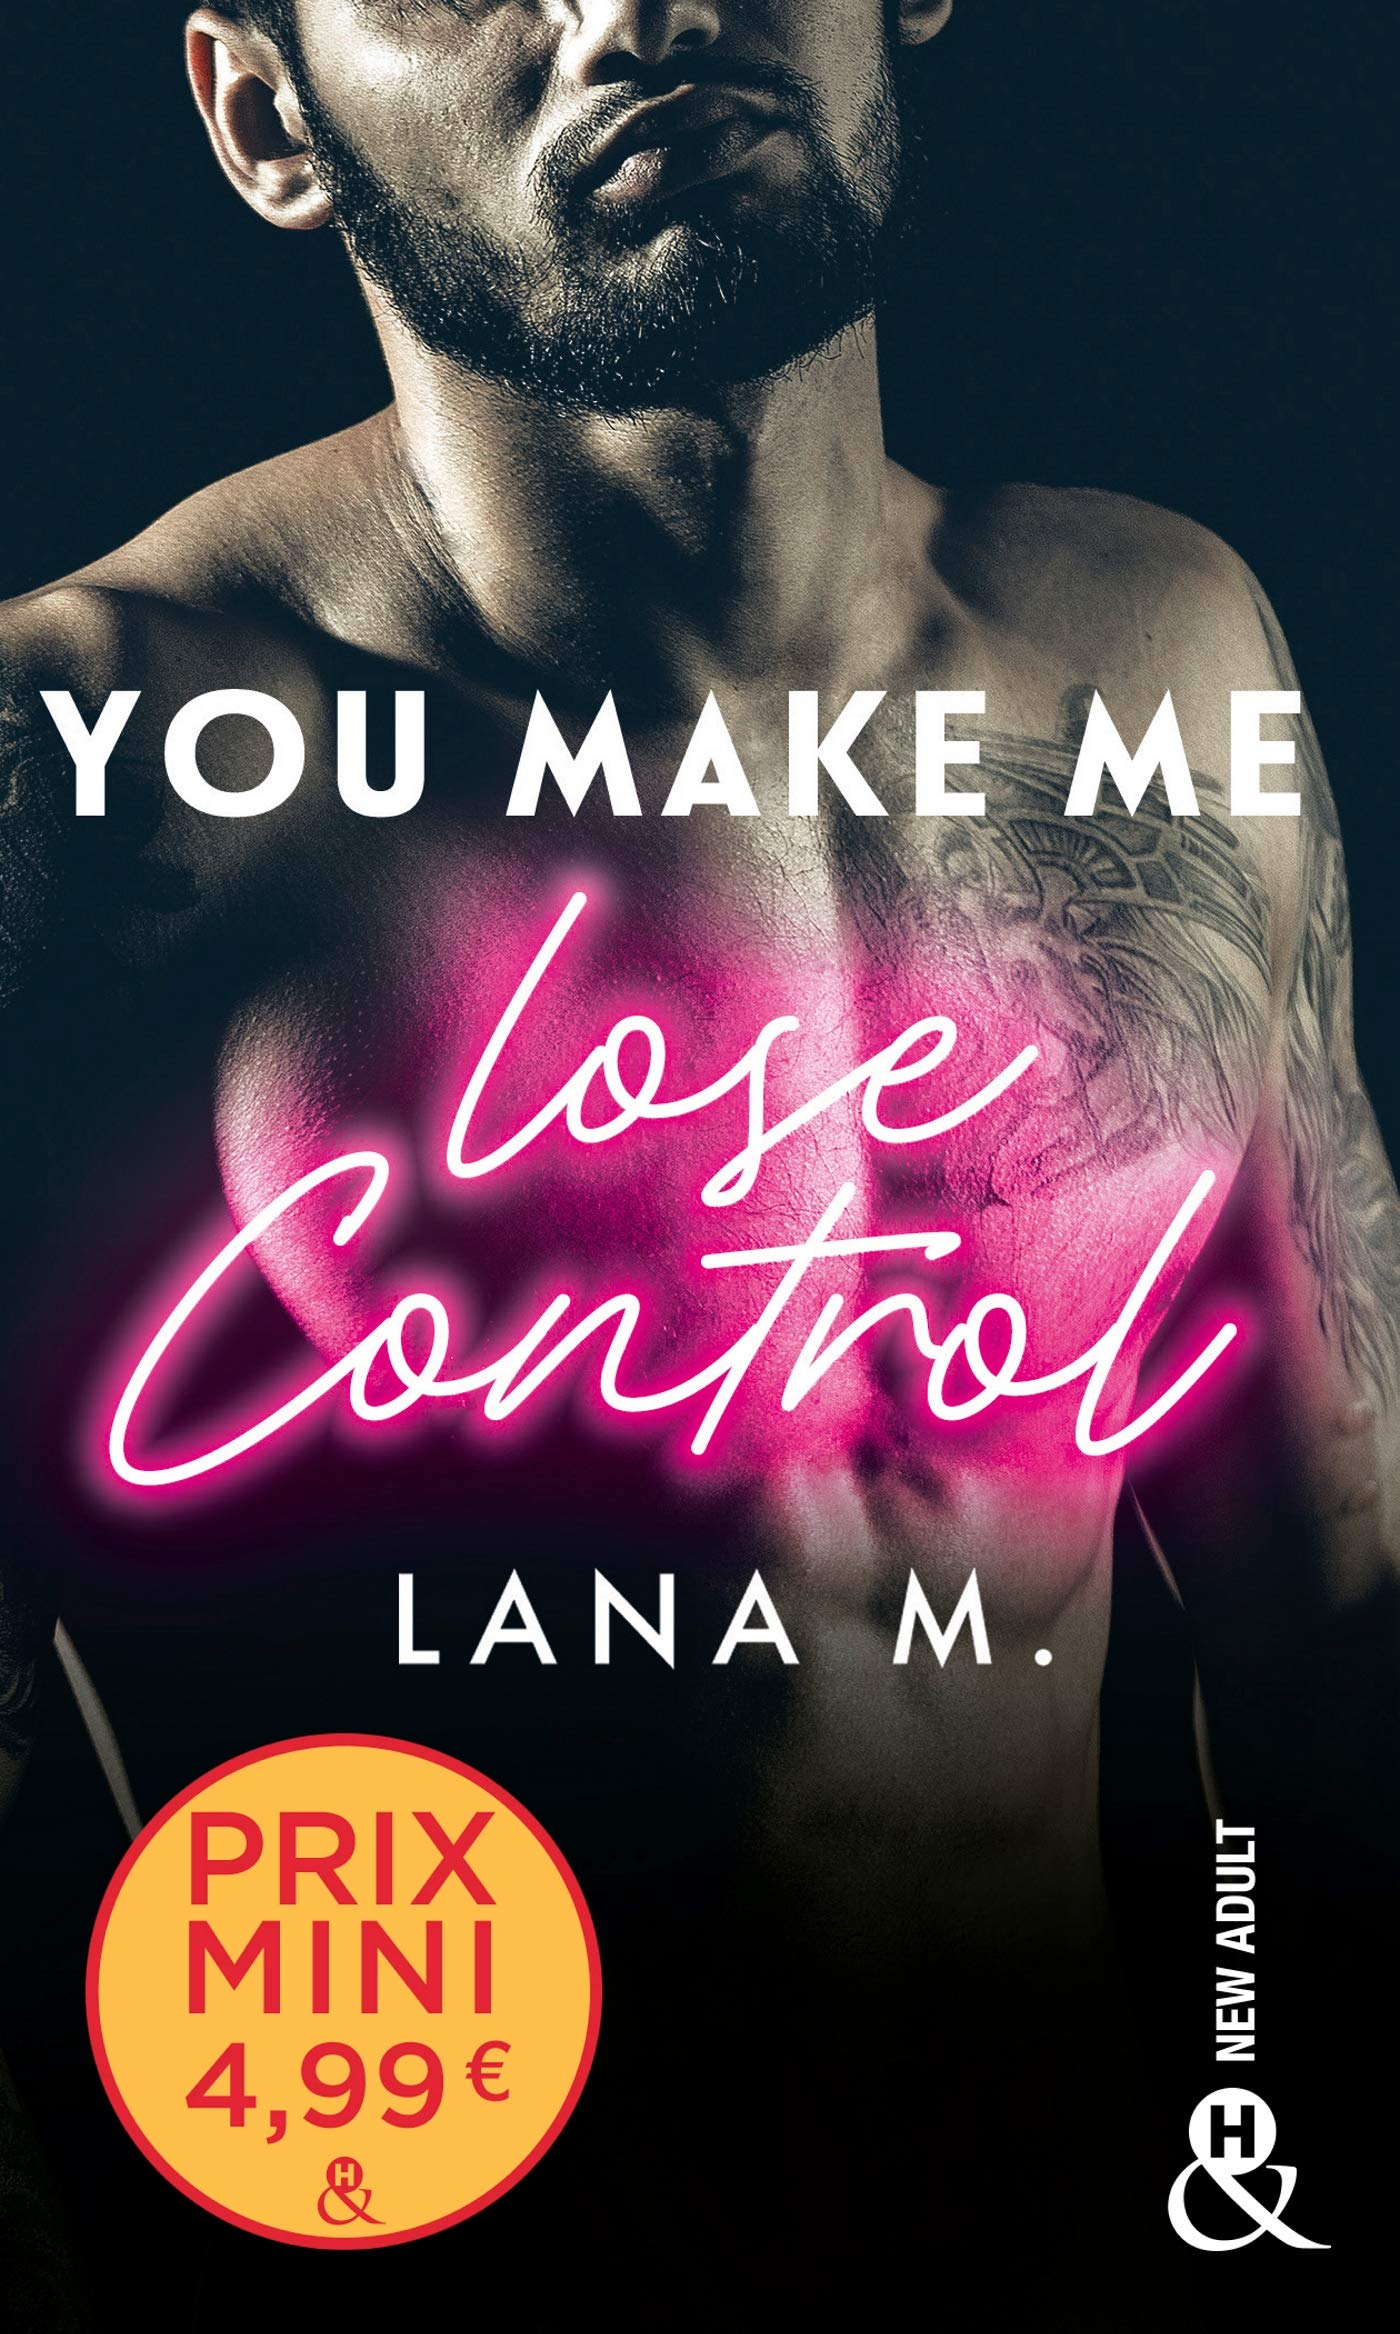 You make me lose control de Lana M. 81cnv011